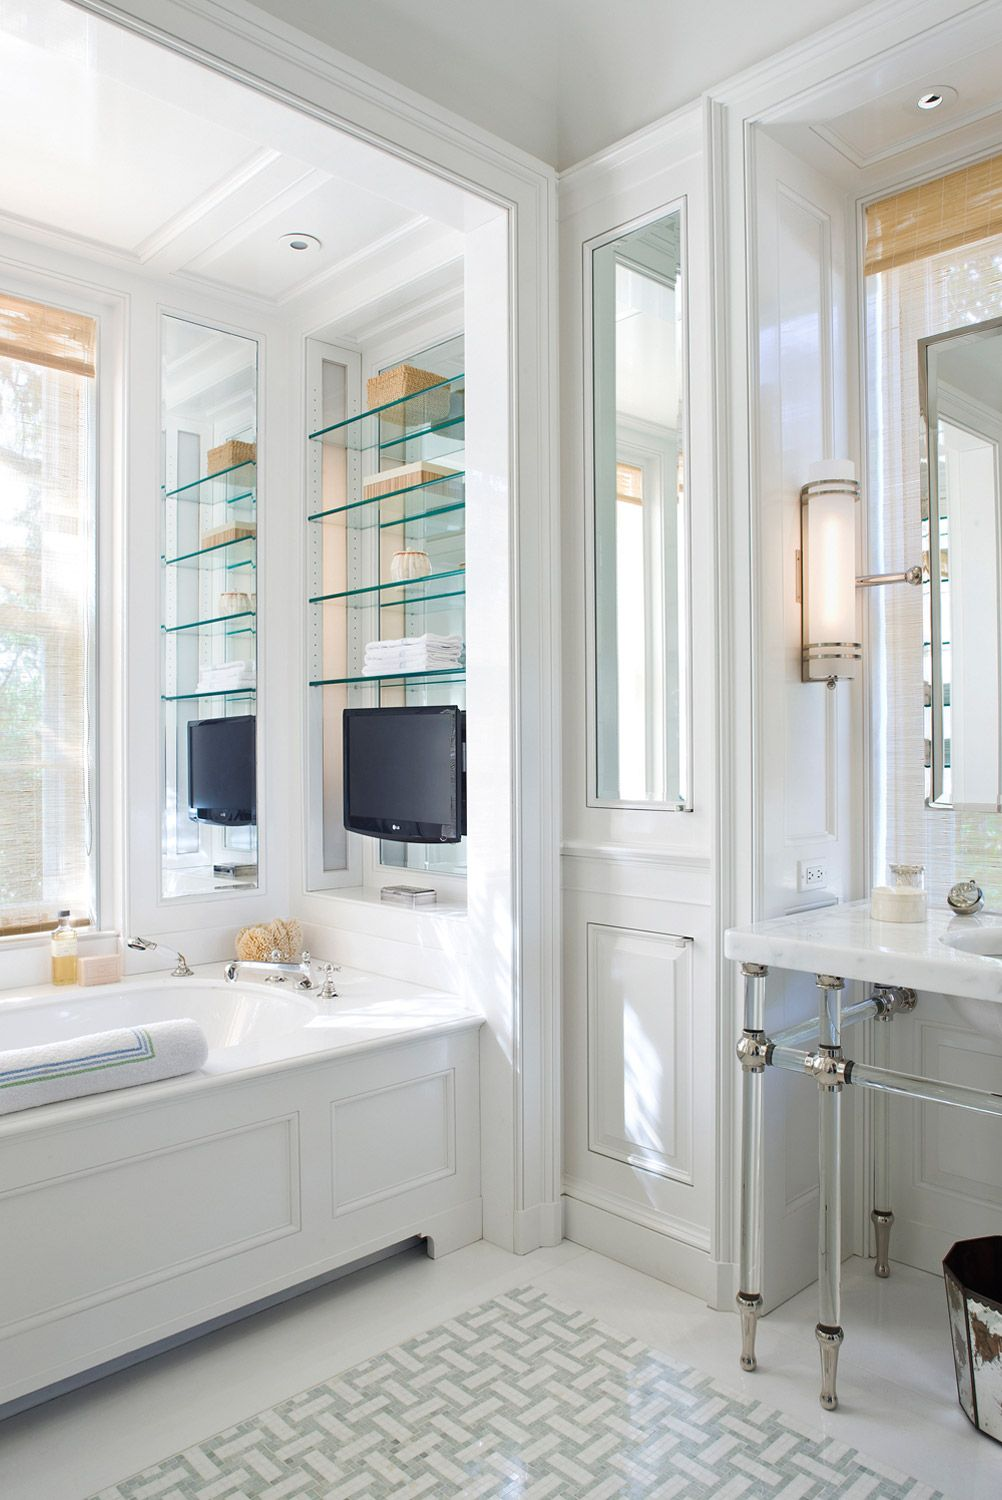 G p schafer architect pllcmirror placed in upper door of - Bathroom storage cabinets floor to ceiling ...